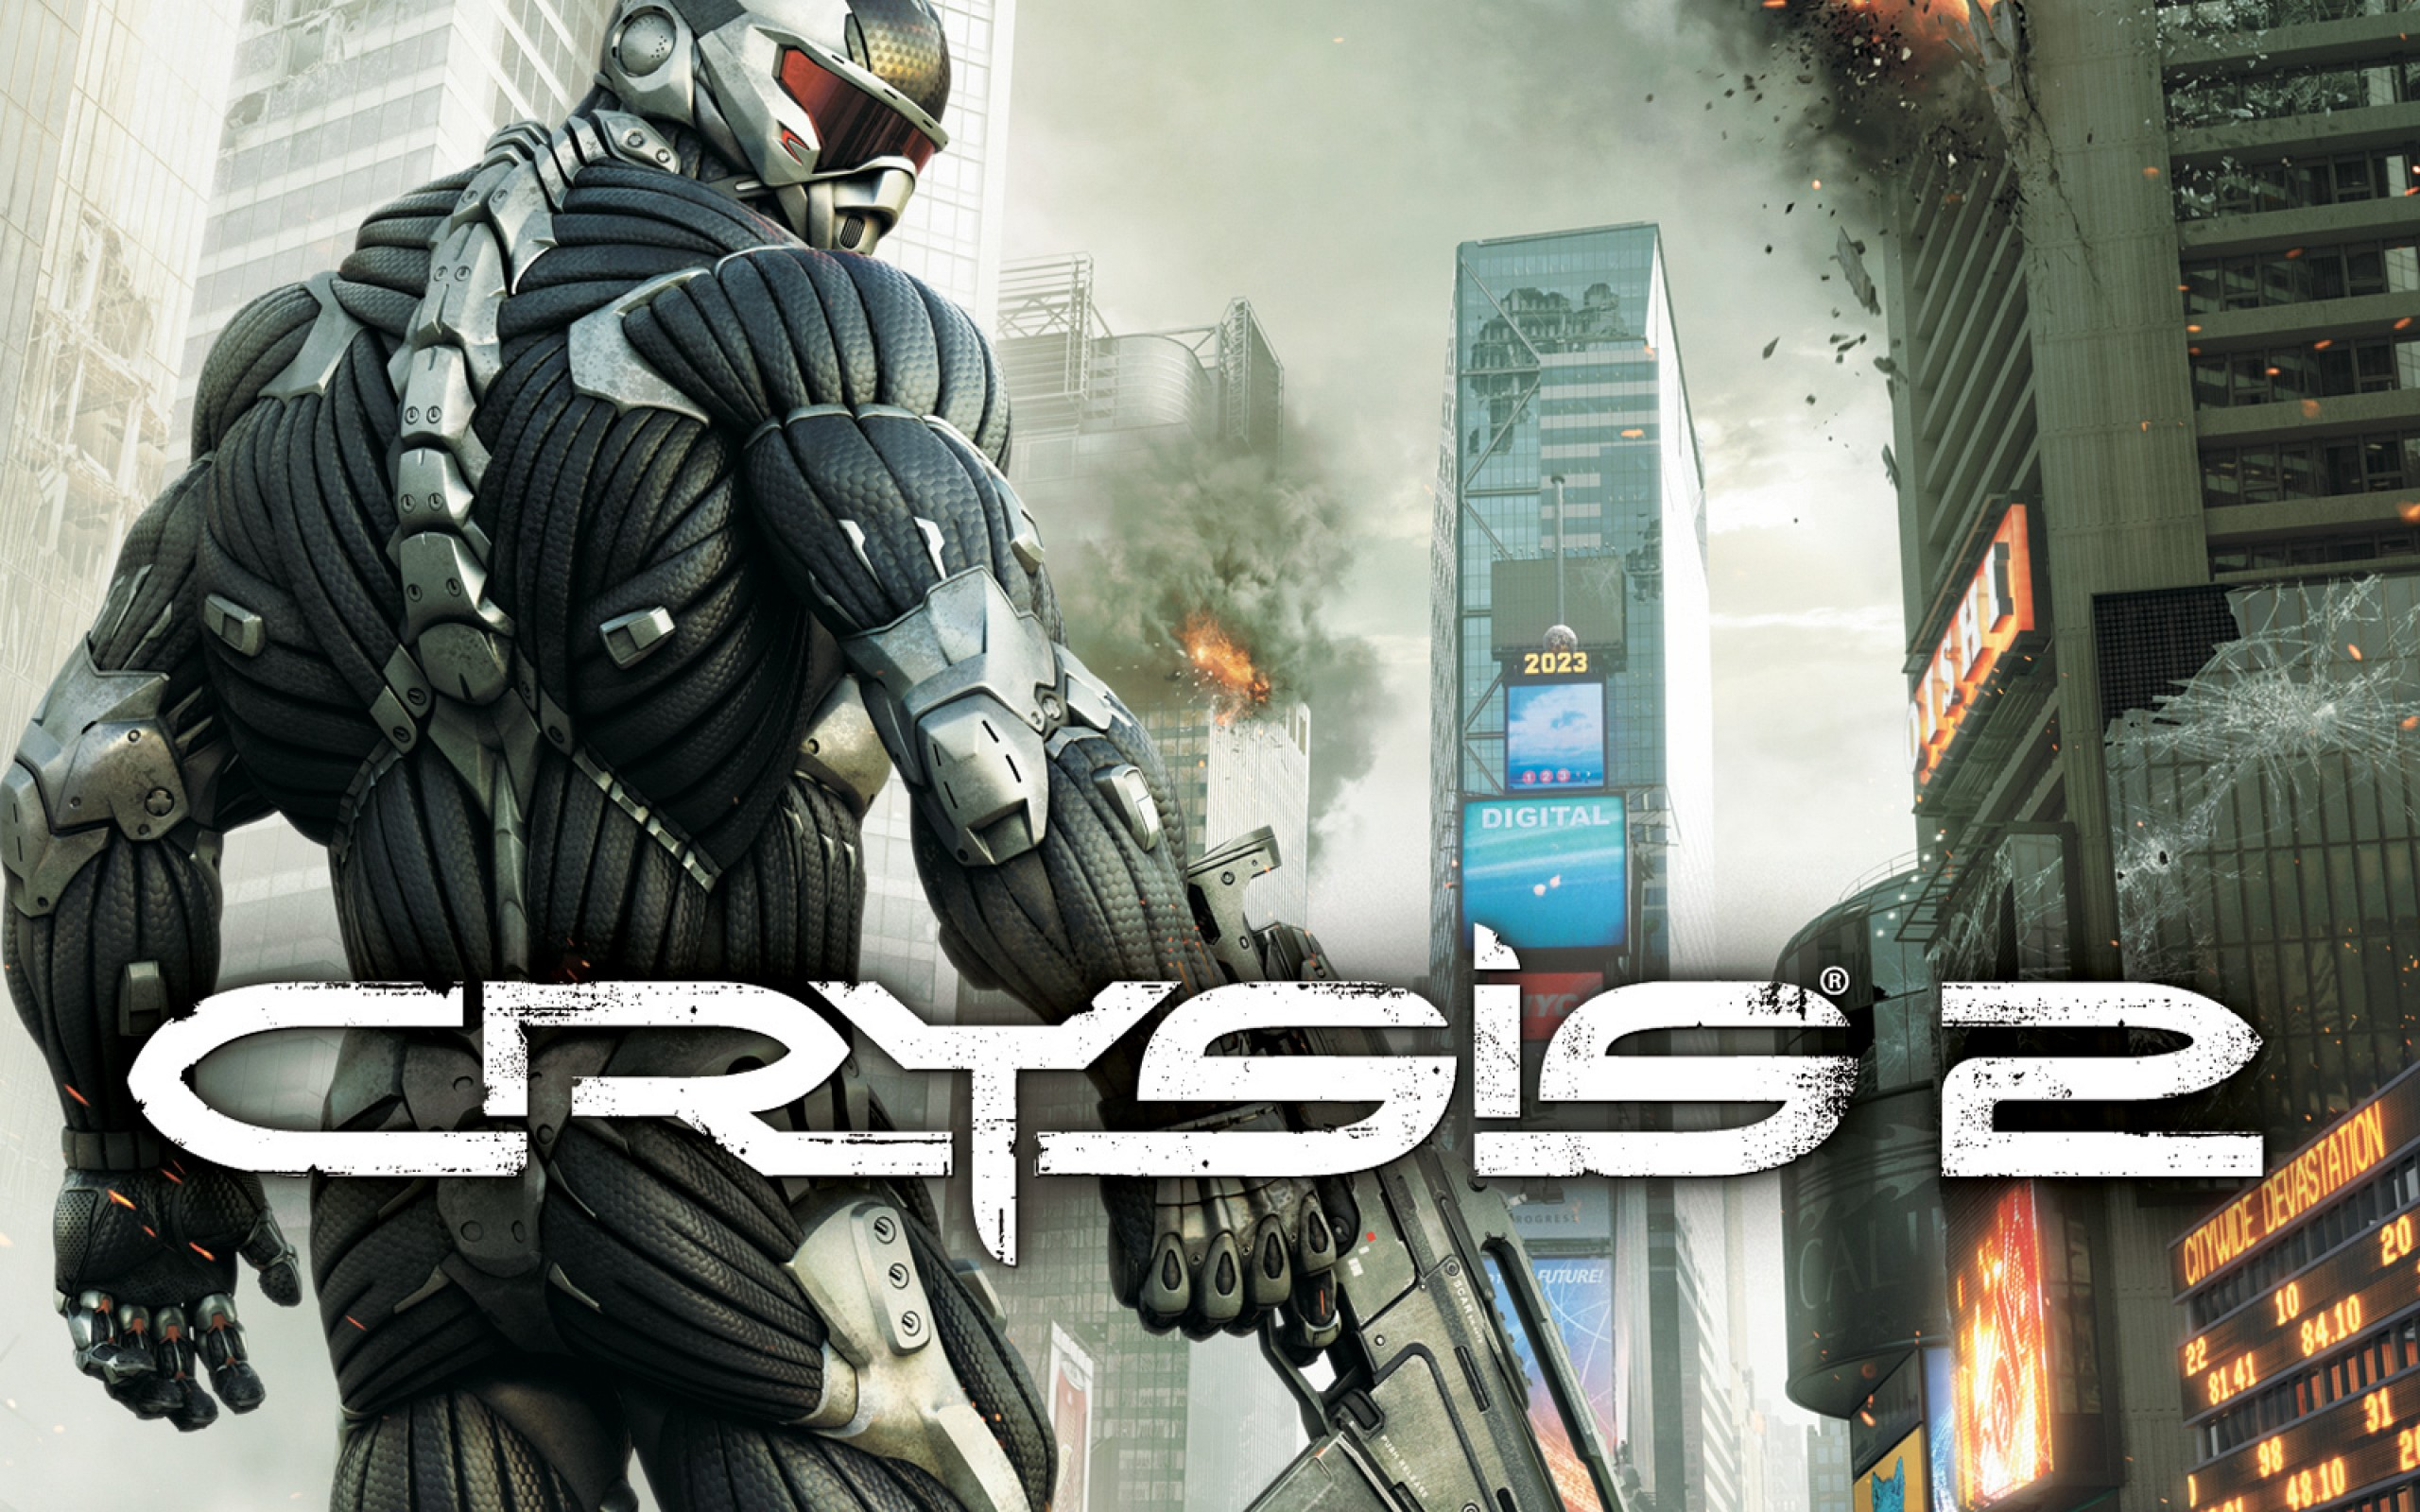 Crysis 2 for Xbox 360 (Scan)